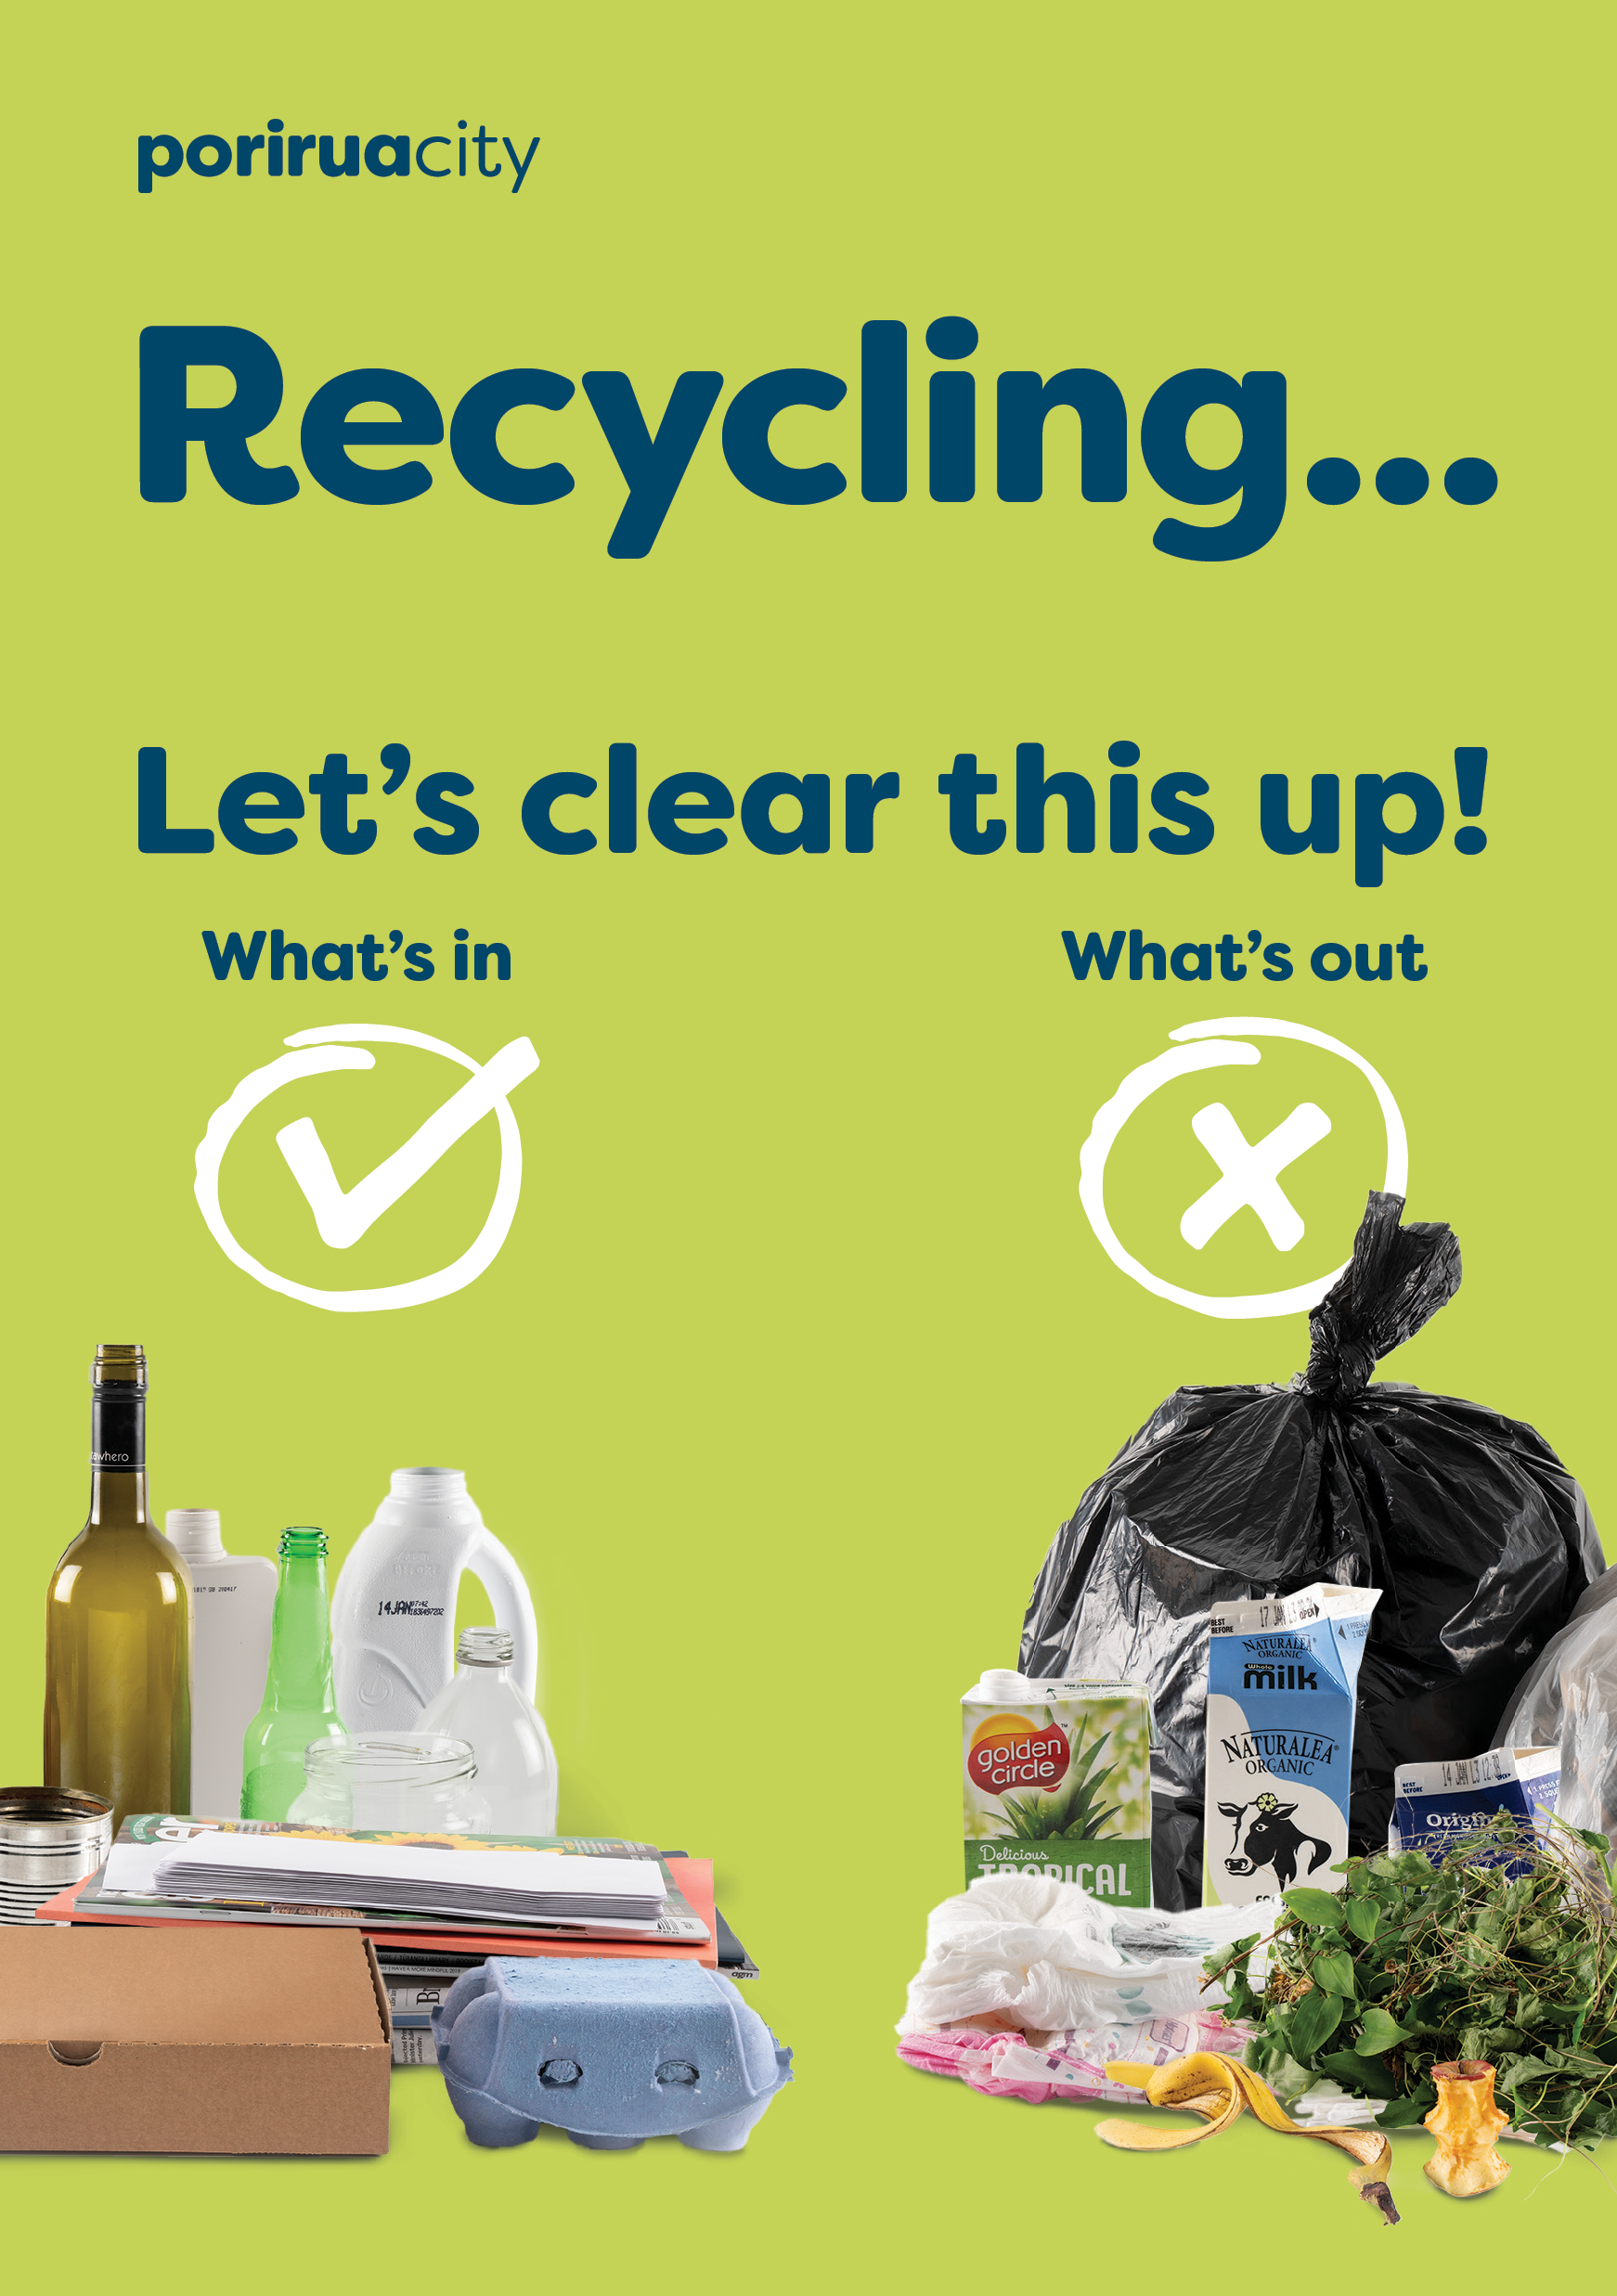 Recycling-Let's clear this up-seps-HR1.png